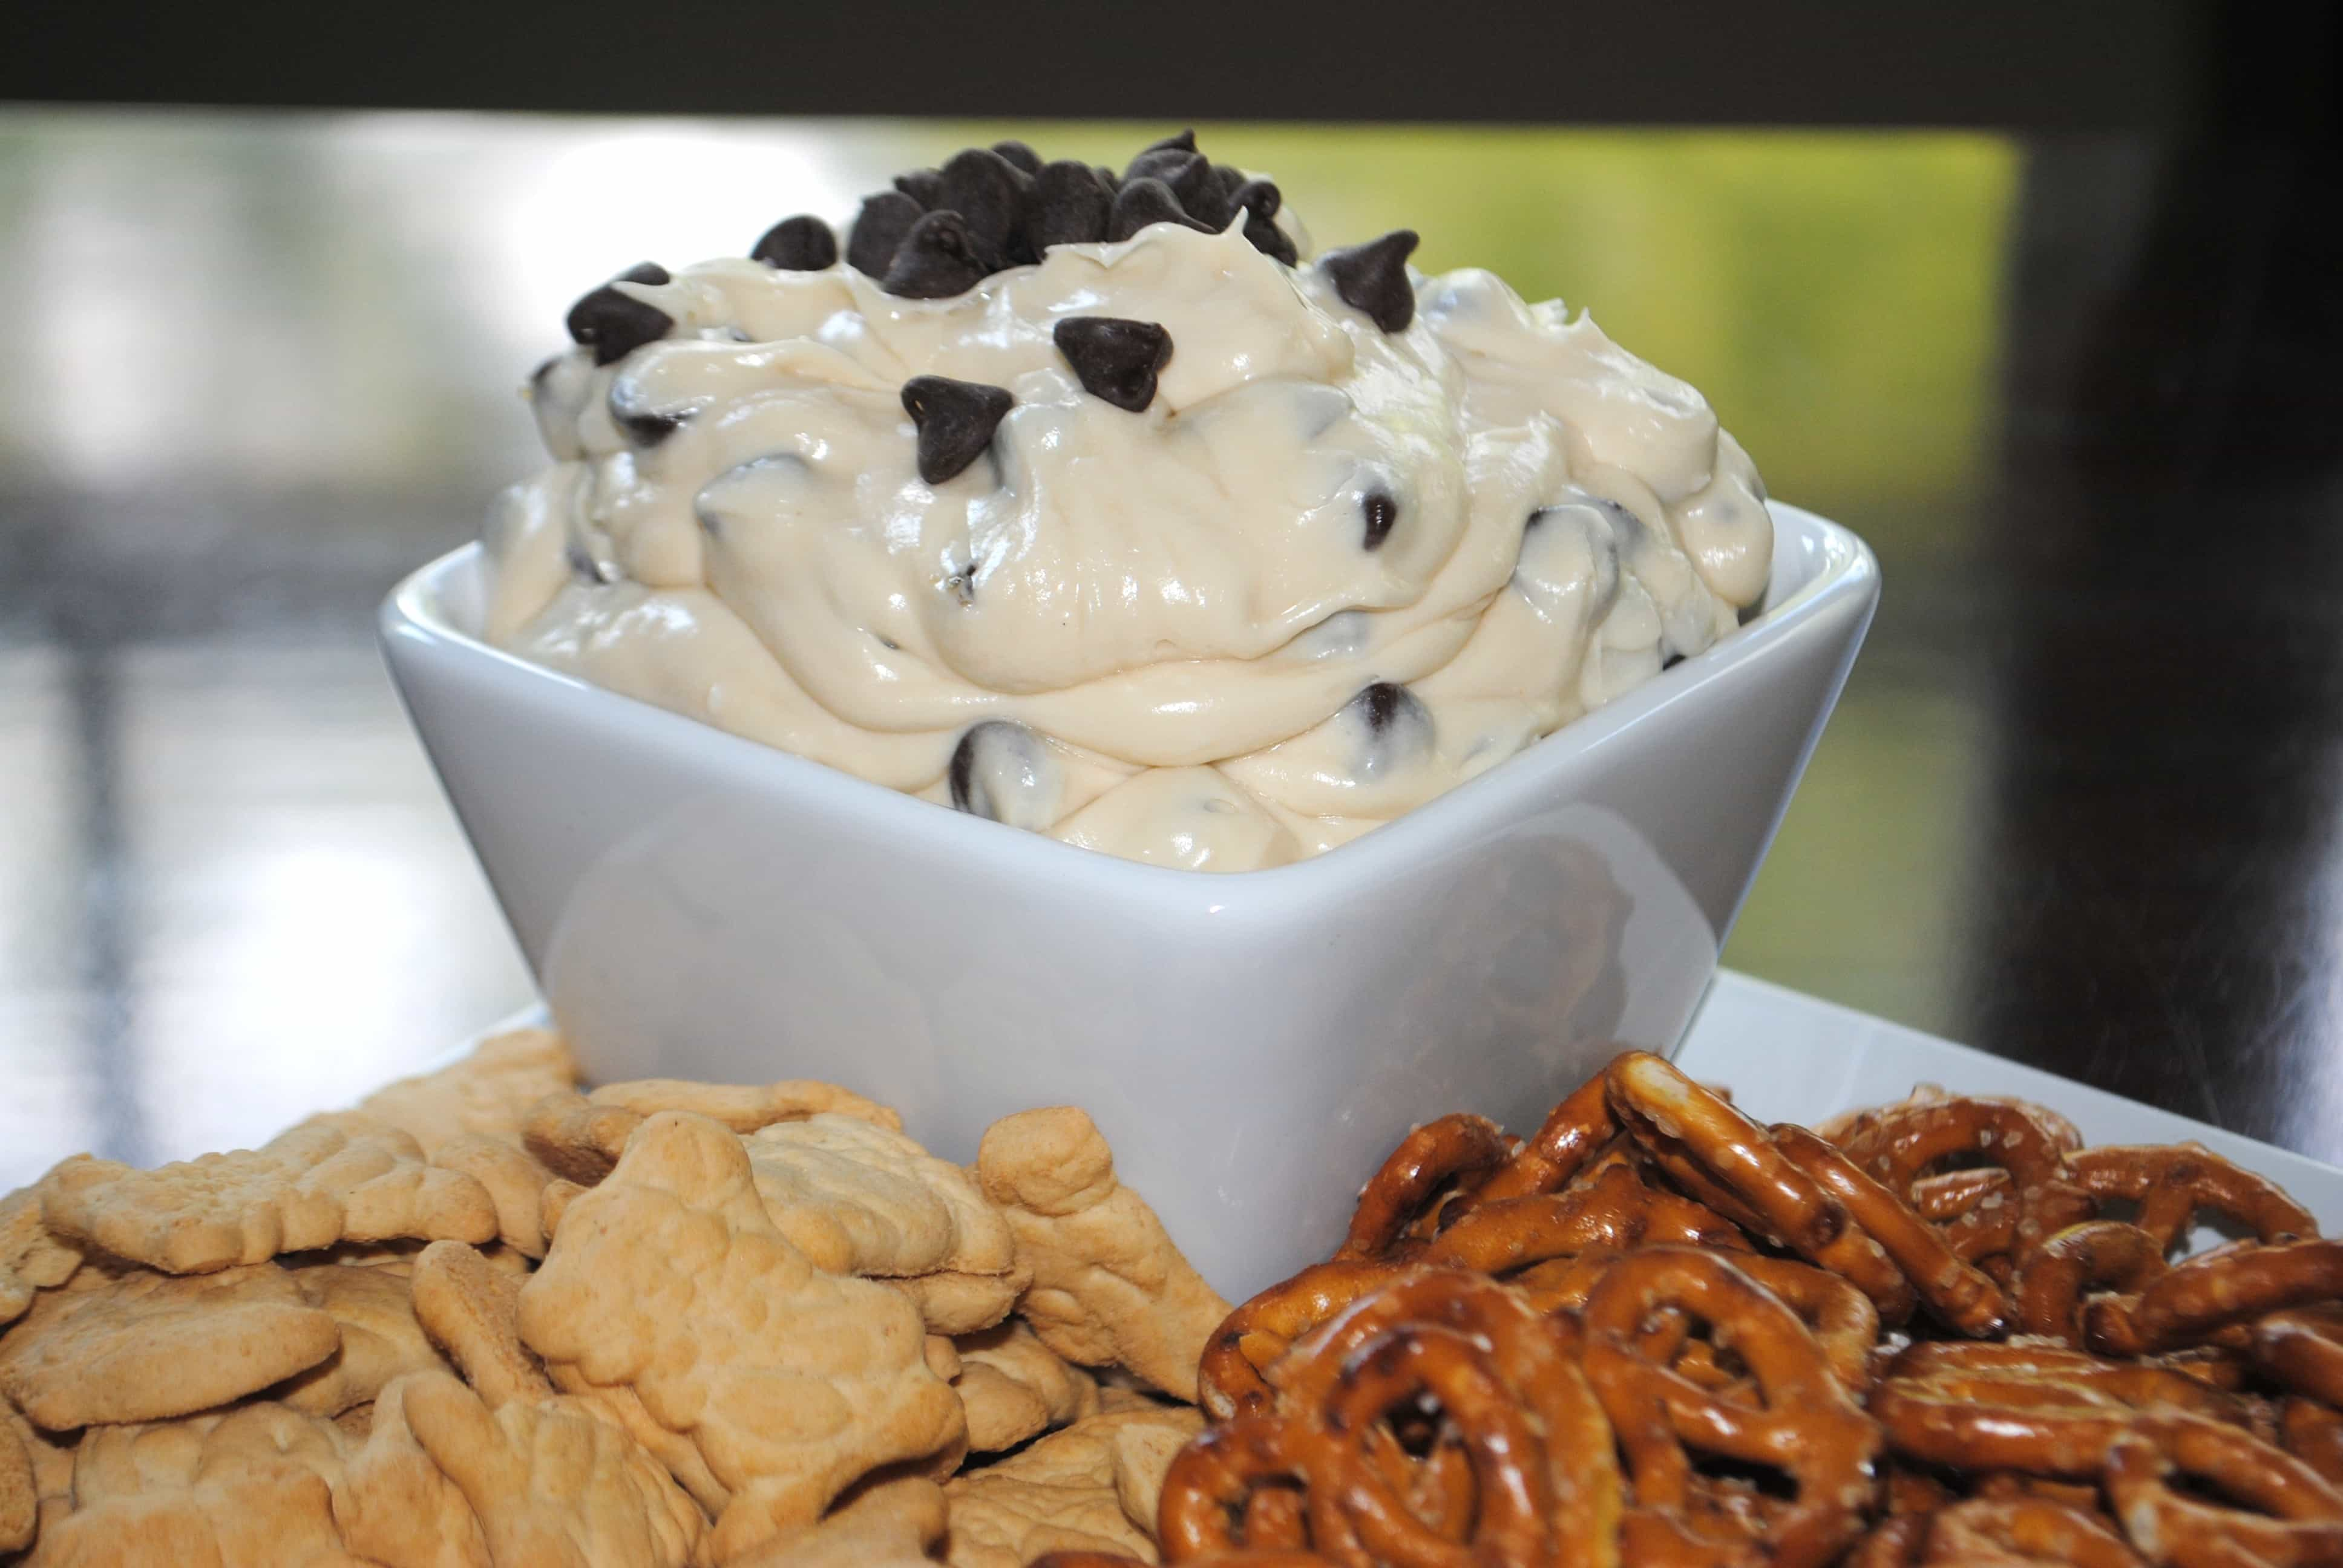 Chocolate Chip Cookie Dough Dip from www.shugarysweets.com